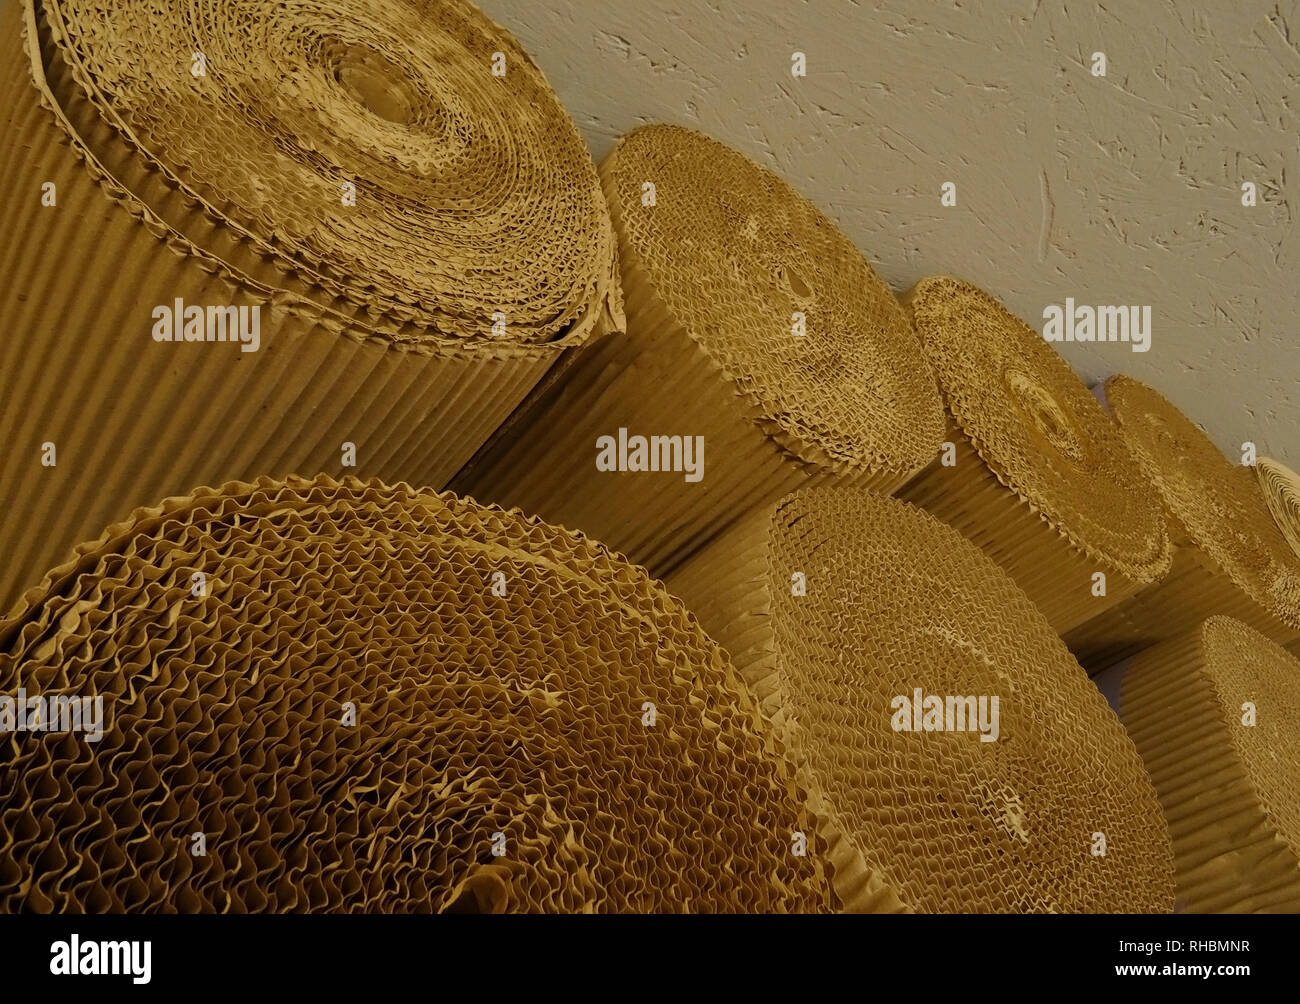 Cardboard rolls at the paper production factory storage stock image - Stock Image